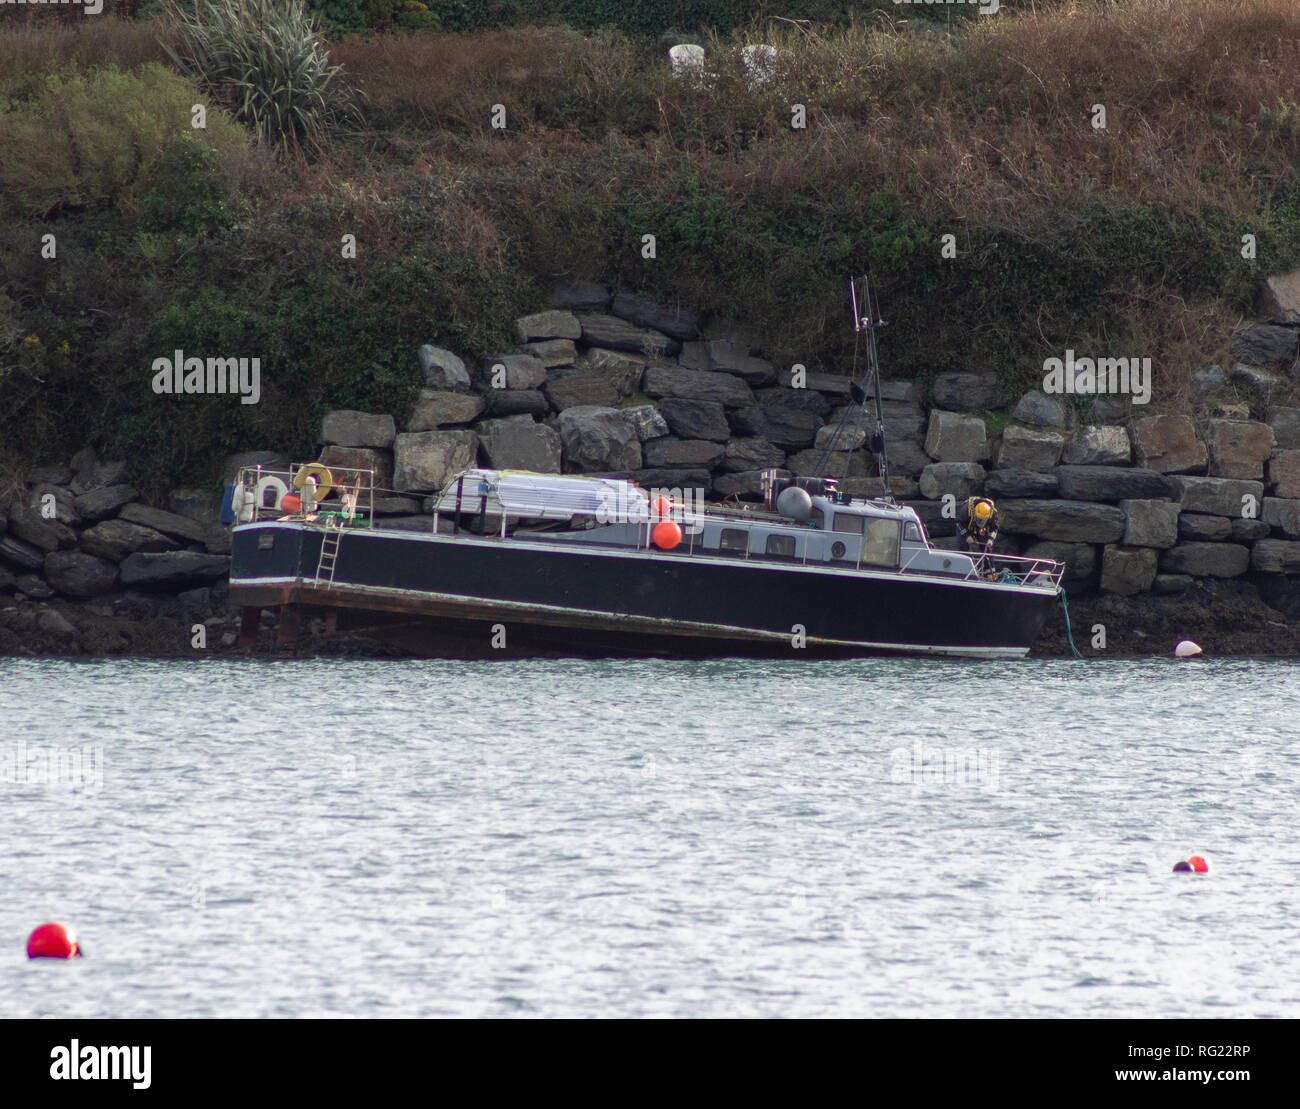 Last night's high winds found the MV Sea Tracker aground on the rocks in Castlehaven Harbour this morning. The wooden hulled vessel was stuck fast on a falling tide, the Irish Coast Guard are in attendance and no casualties are reported. Credit: aphperspective/Alamy Live News - Stock Image